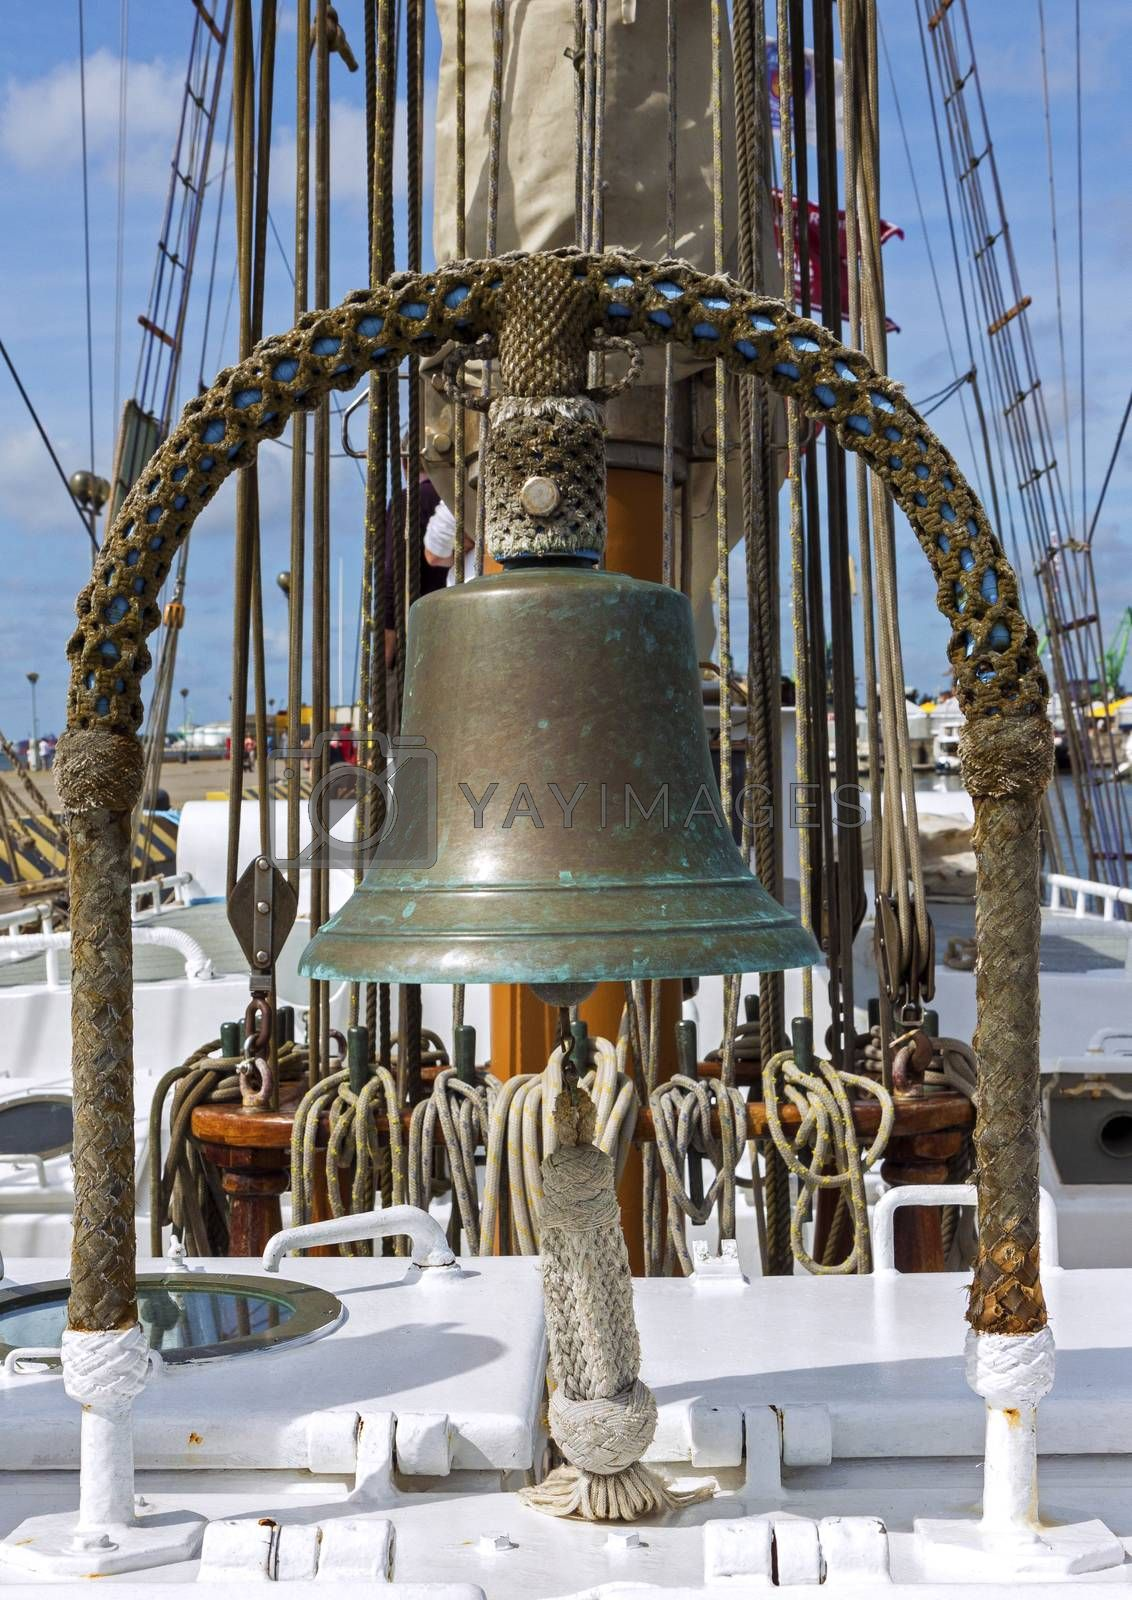 Closeup of ship deck with sail ropes and old bell made of copper